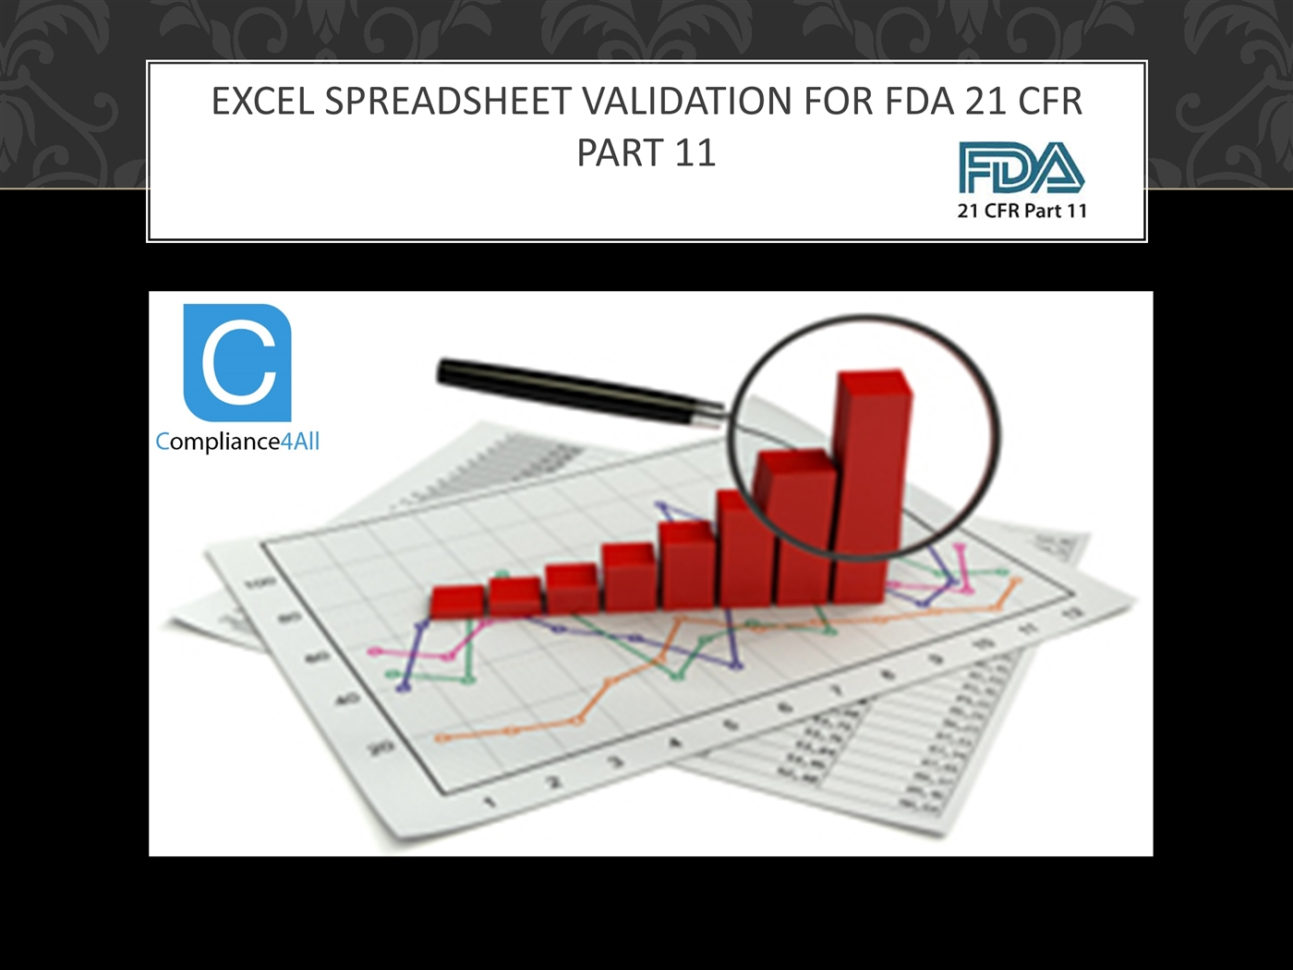 Spreadsheet Validation Fda Pertaining To Excel Spreadsheet Validation For Fda 21 Cfr Part.pptx Powerpoint